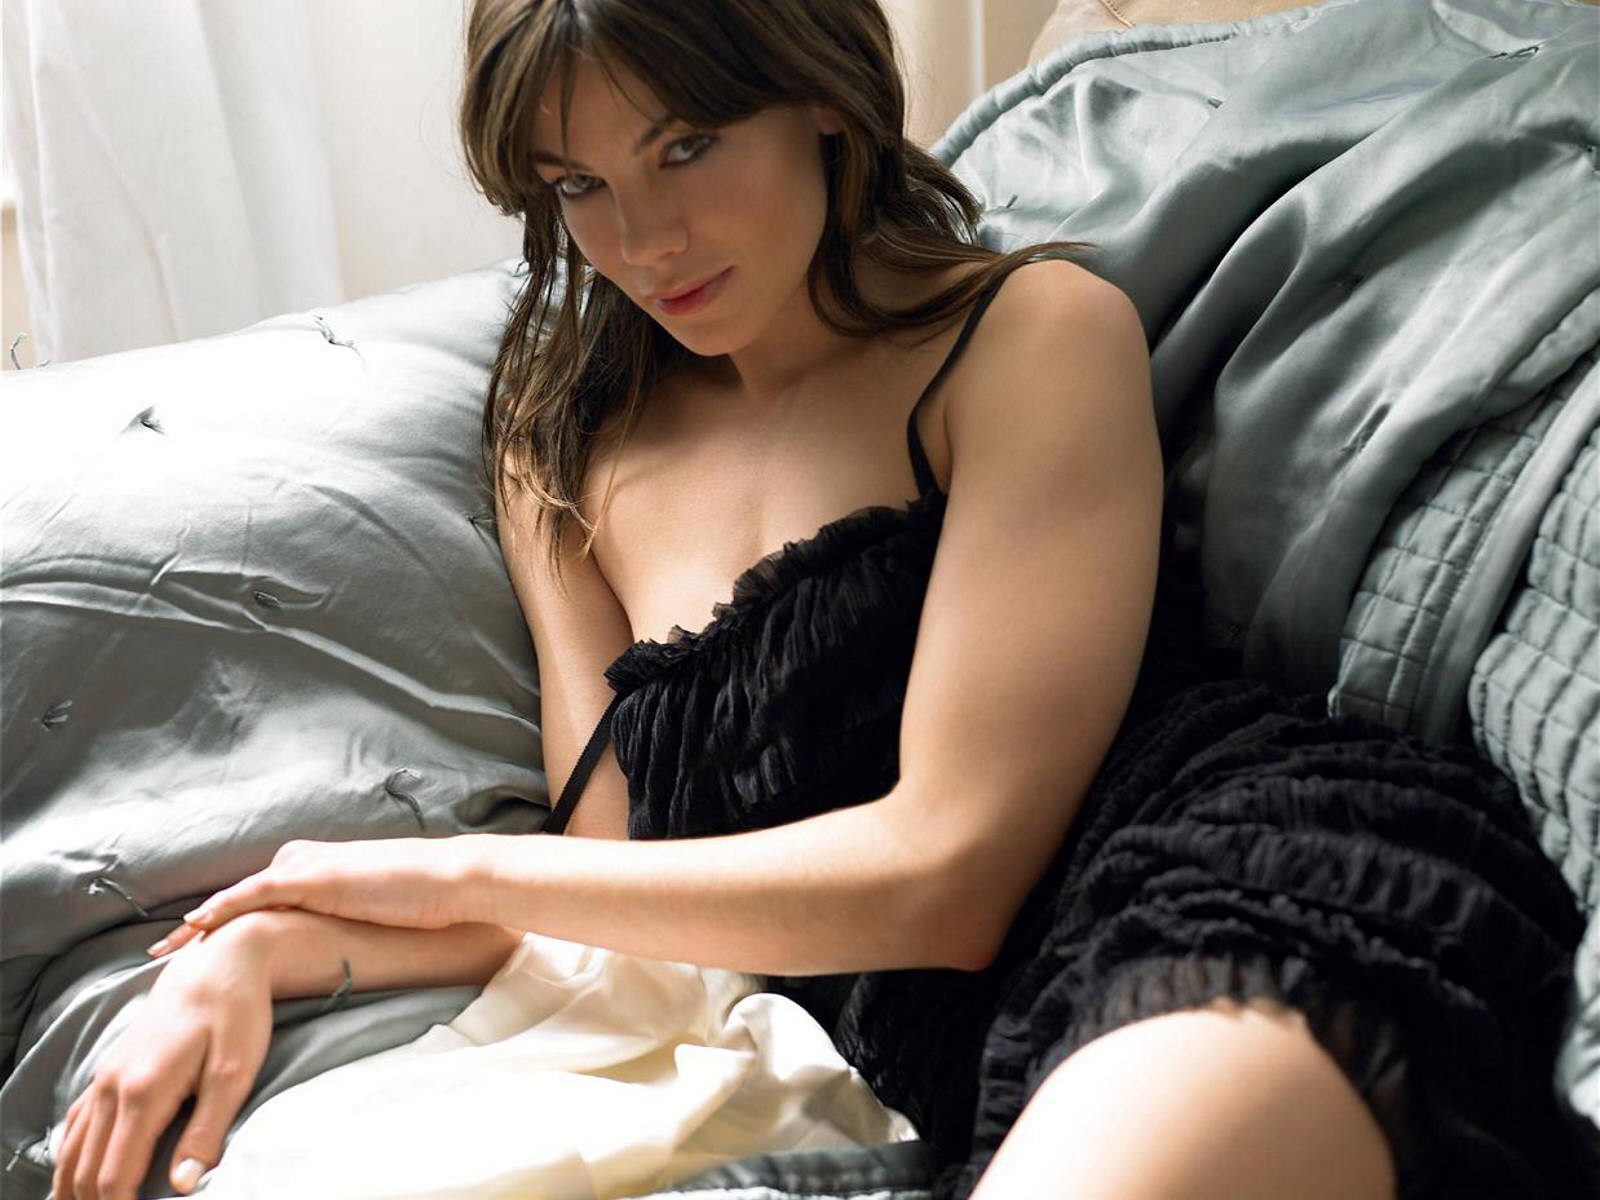 Michelle monaghan nude pics 22